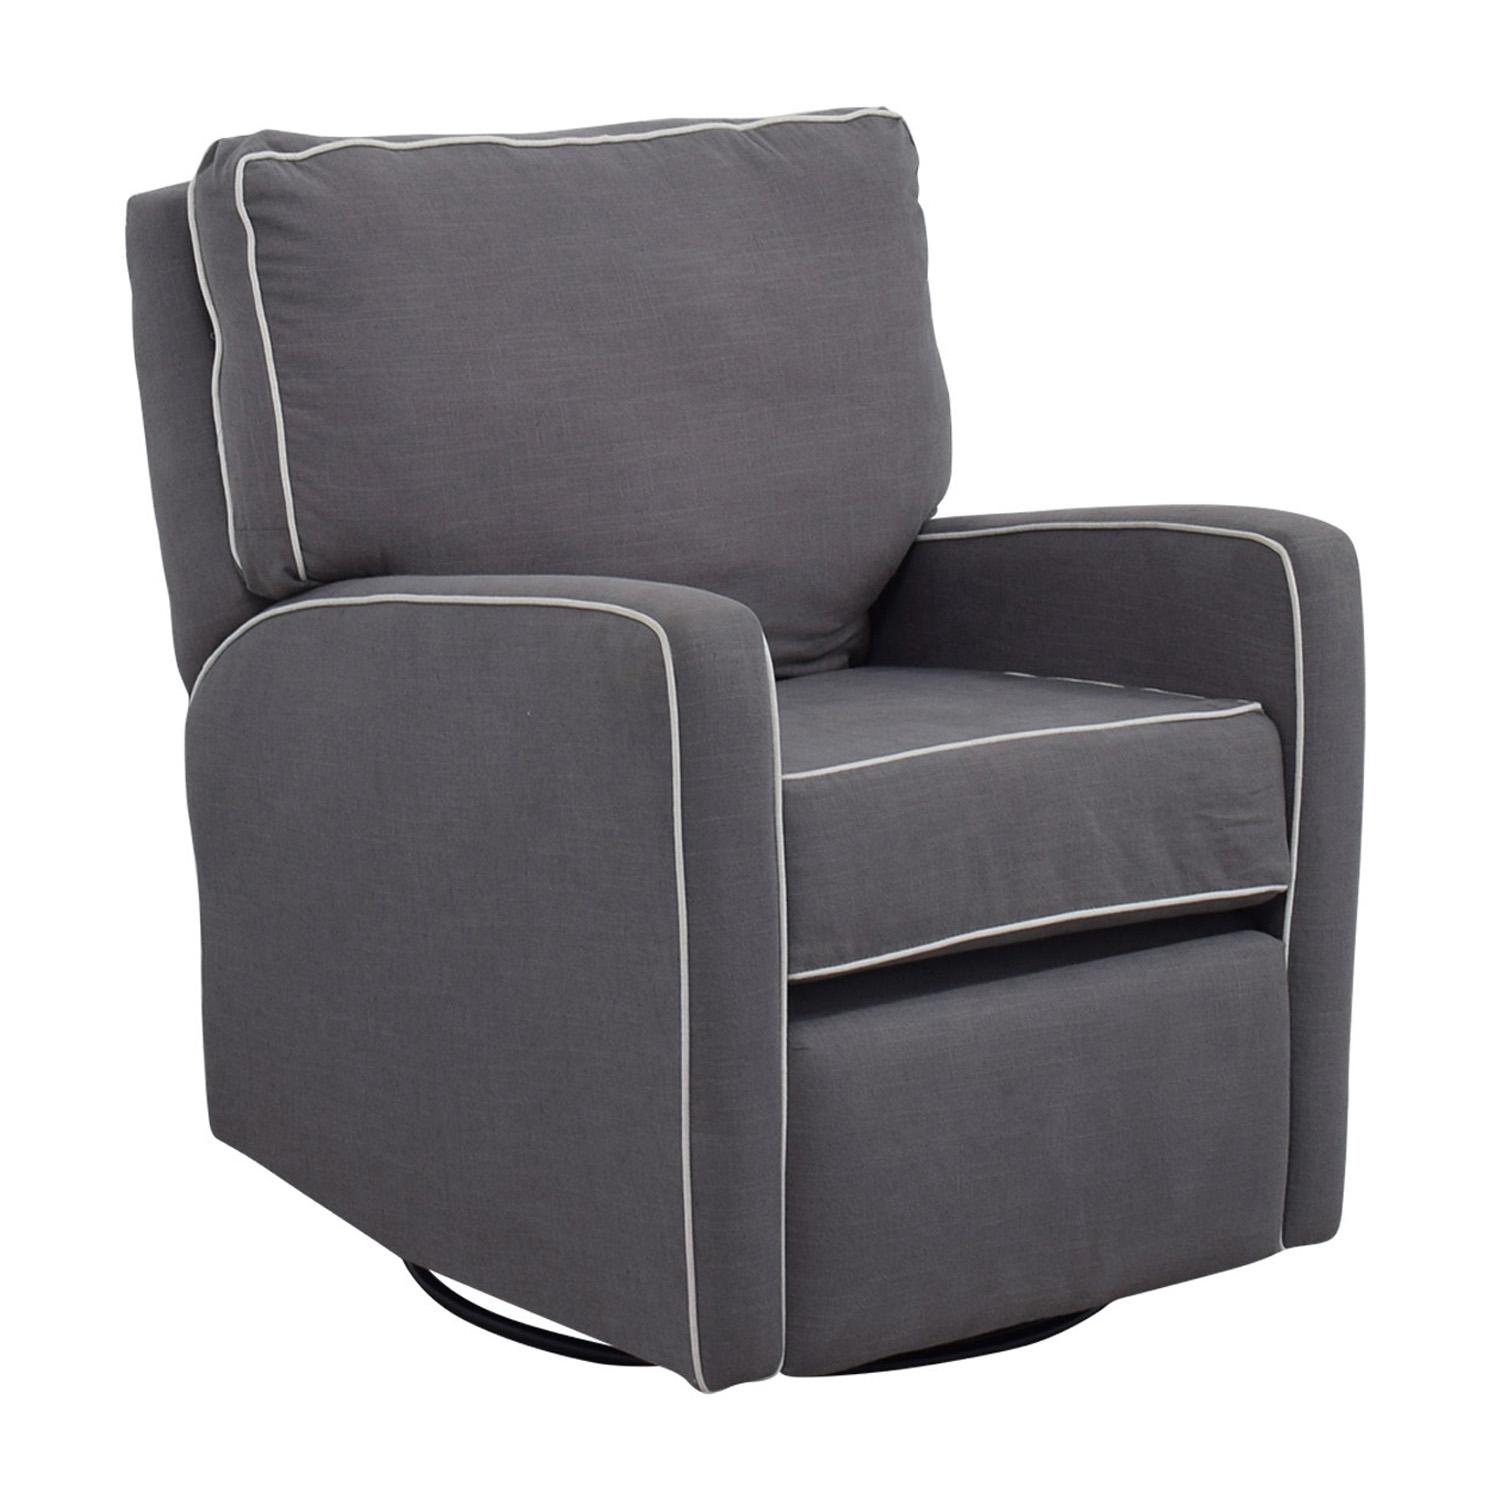 37 OFF  Grey with White Trim Rocking Chair  Chairs